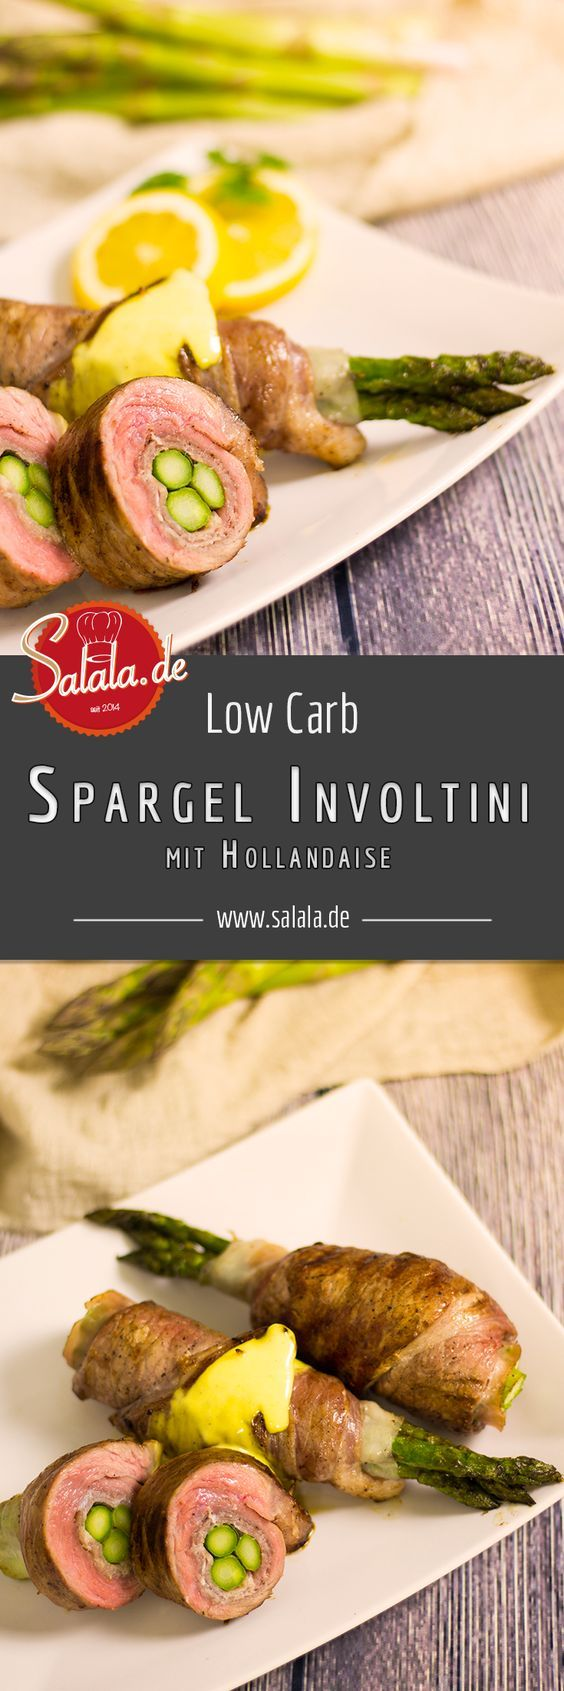 Photo of Asparagus Involtini – Green asparagus roulades | salala.de – Low …